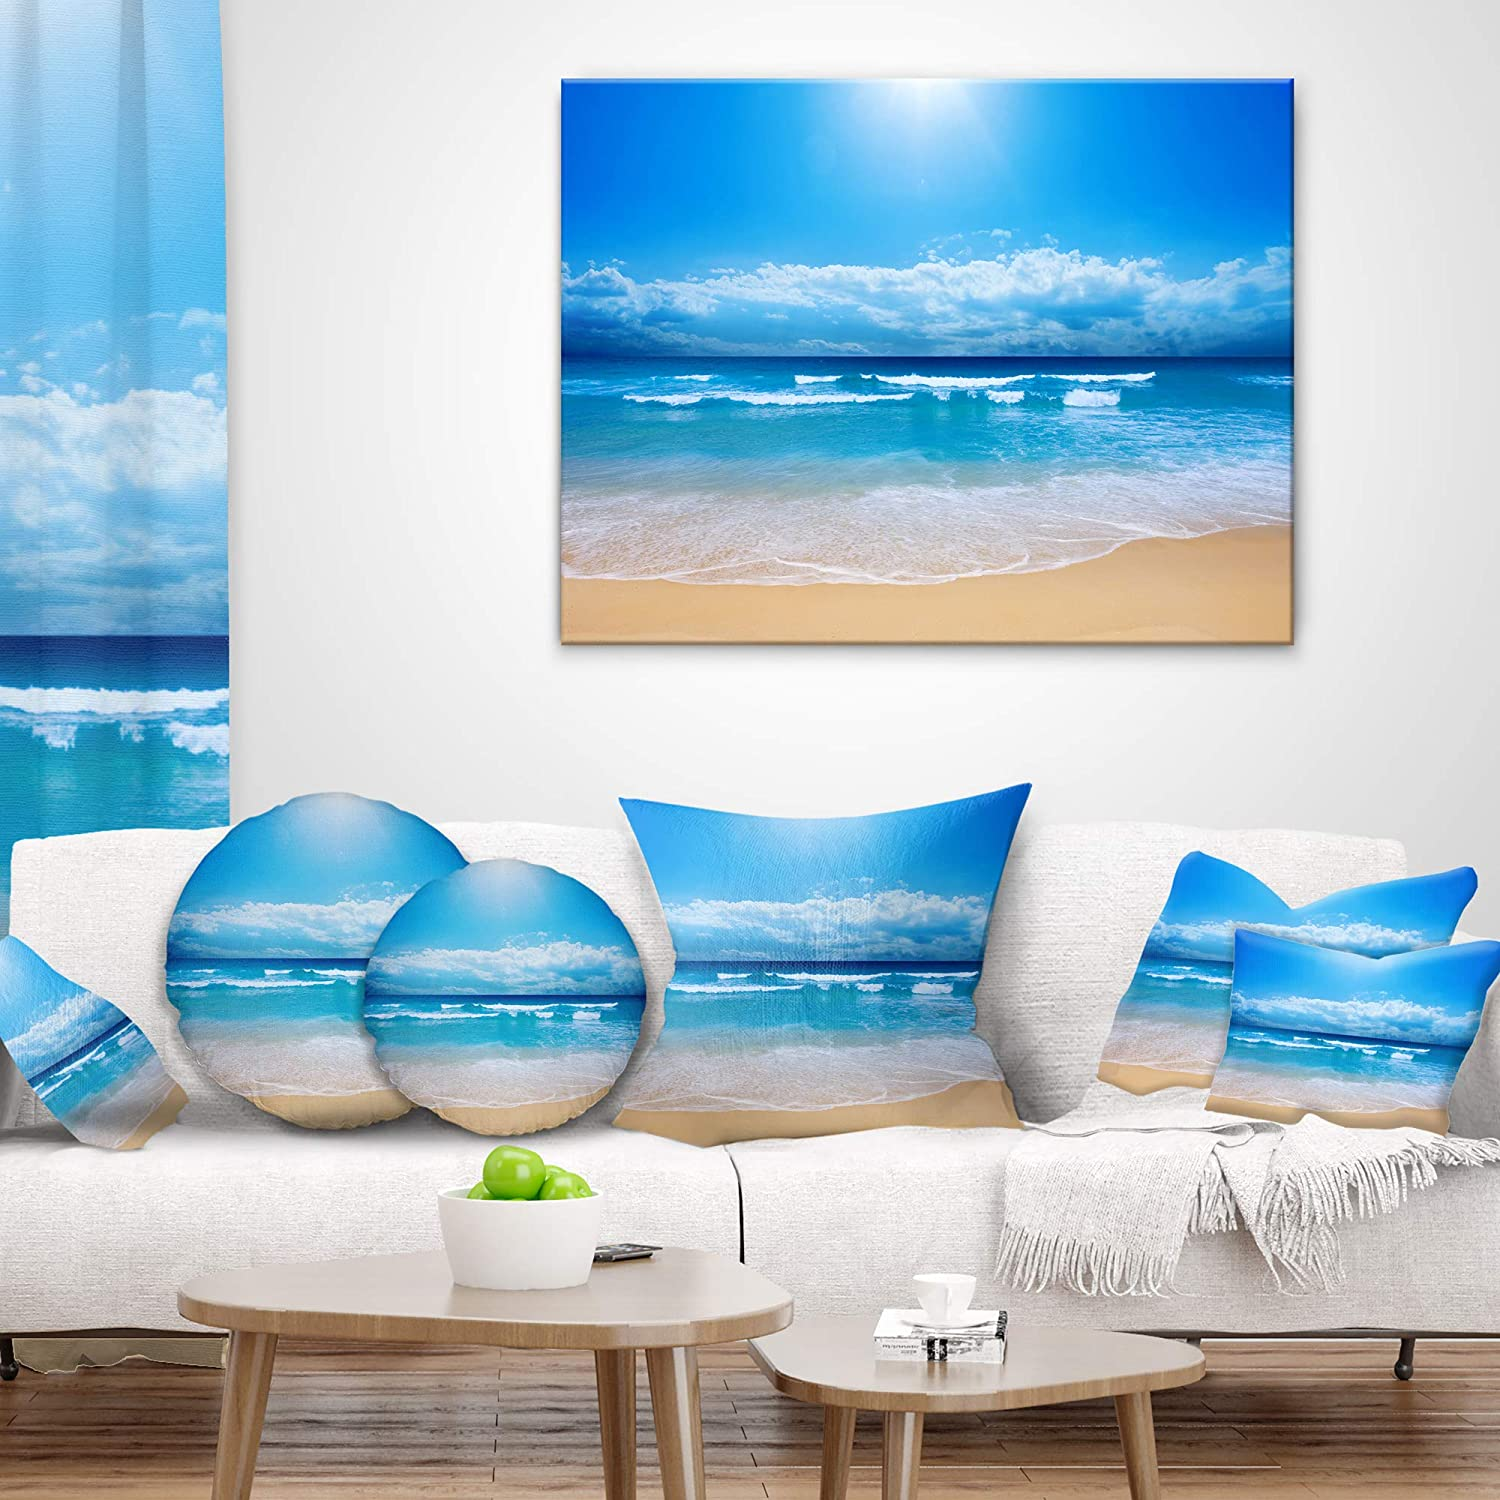 Incredible Designart Cu6808 12 20 Paradise Beach Seascape Photography Ibusinesslaw Wood Chair Design Ideas Ibusinesslaworg